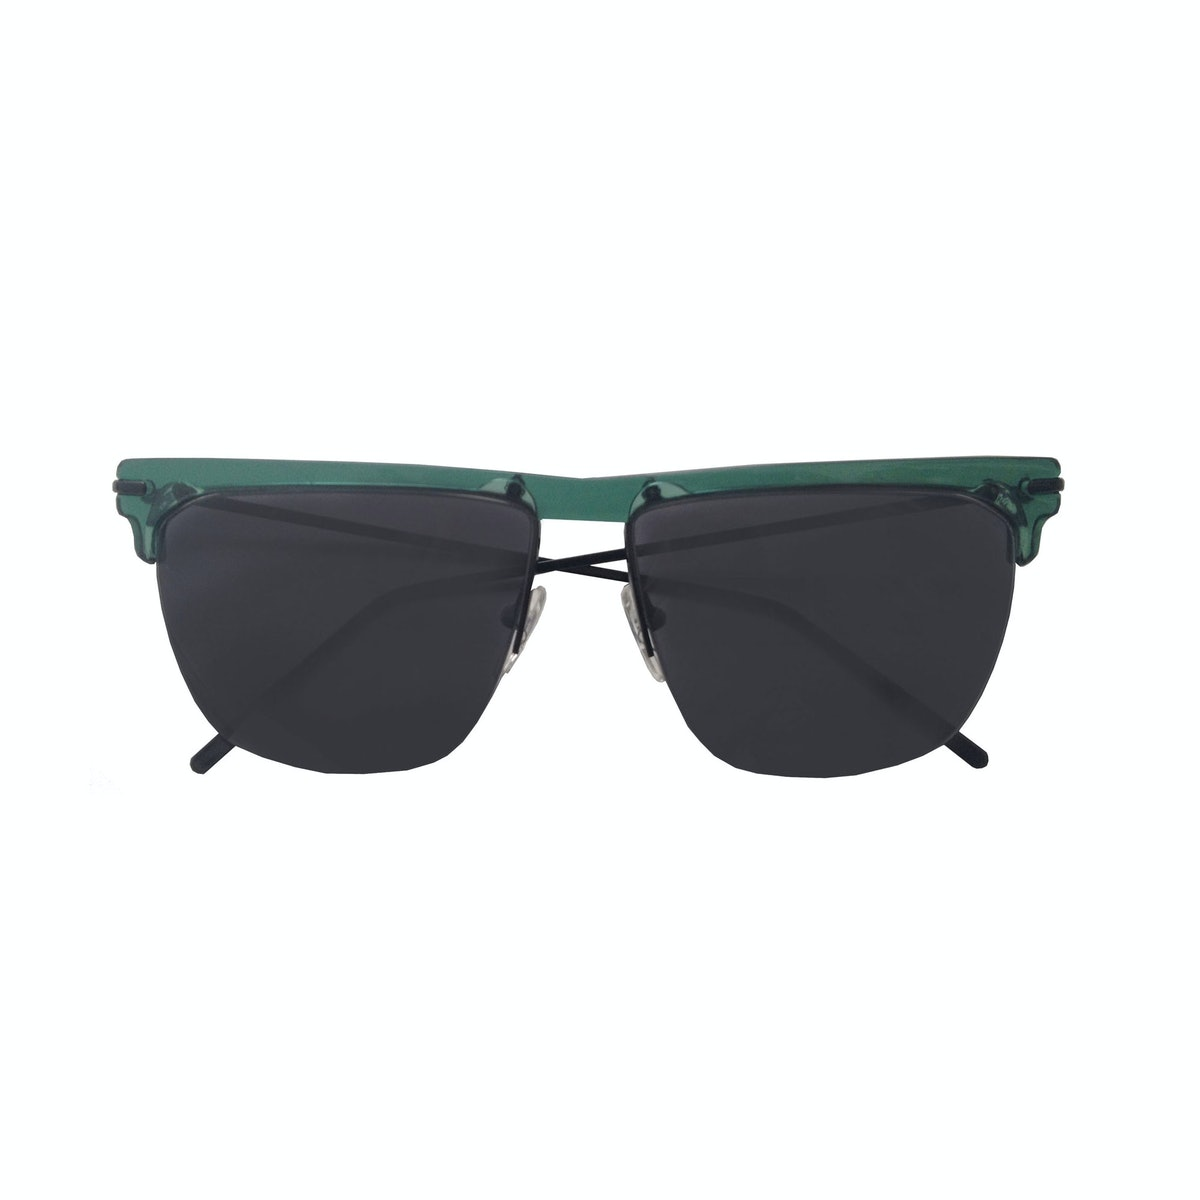 Prism x Toga sunglasses, $408-$430; [Opening Ceremony](http://www.openingceremony.us) stores.